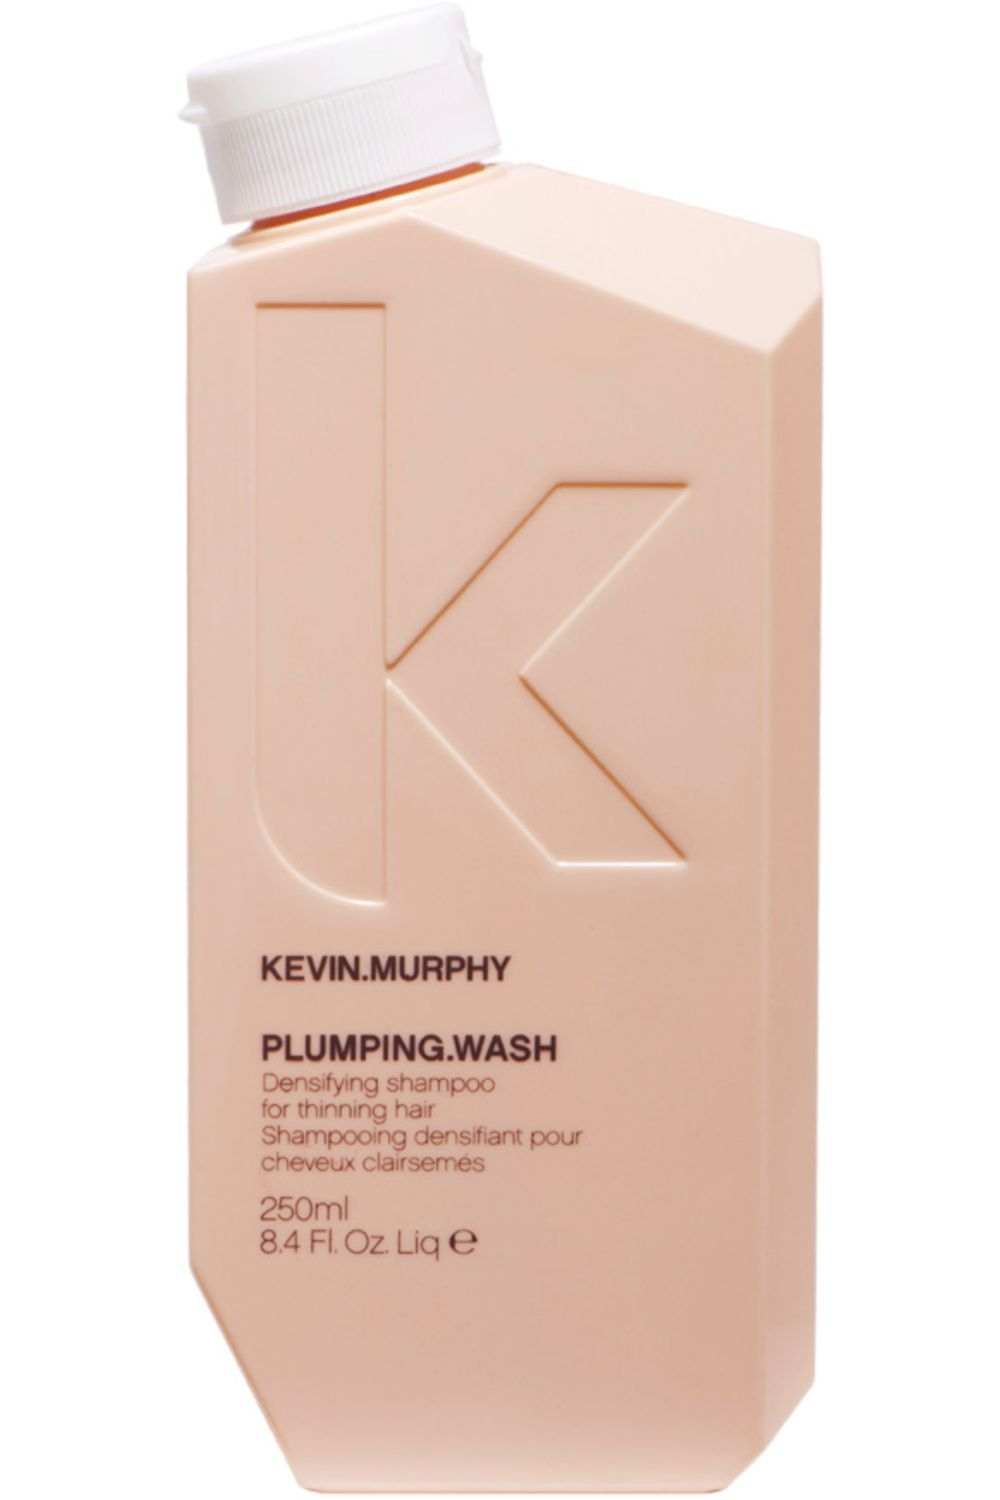 Blissim : KEVIN.MURPHY - Shampoing densifiant PLUMPING.WASH - Shampoing densifiant PLUMPING.WASH